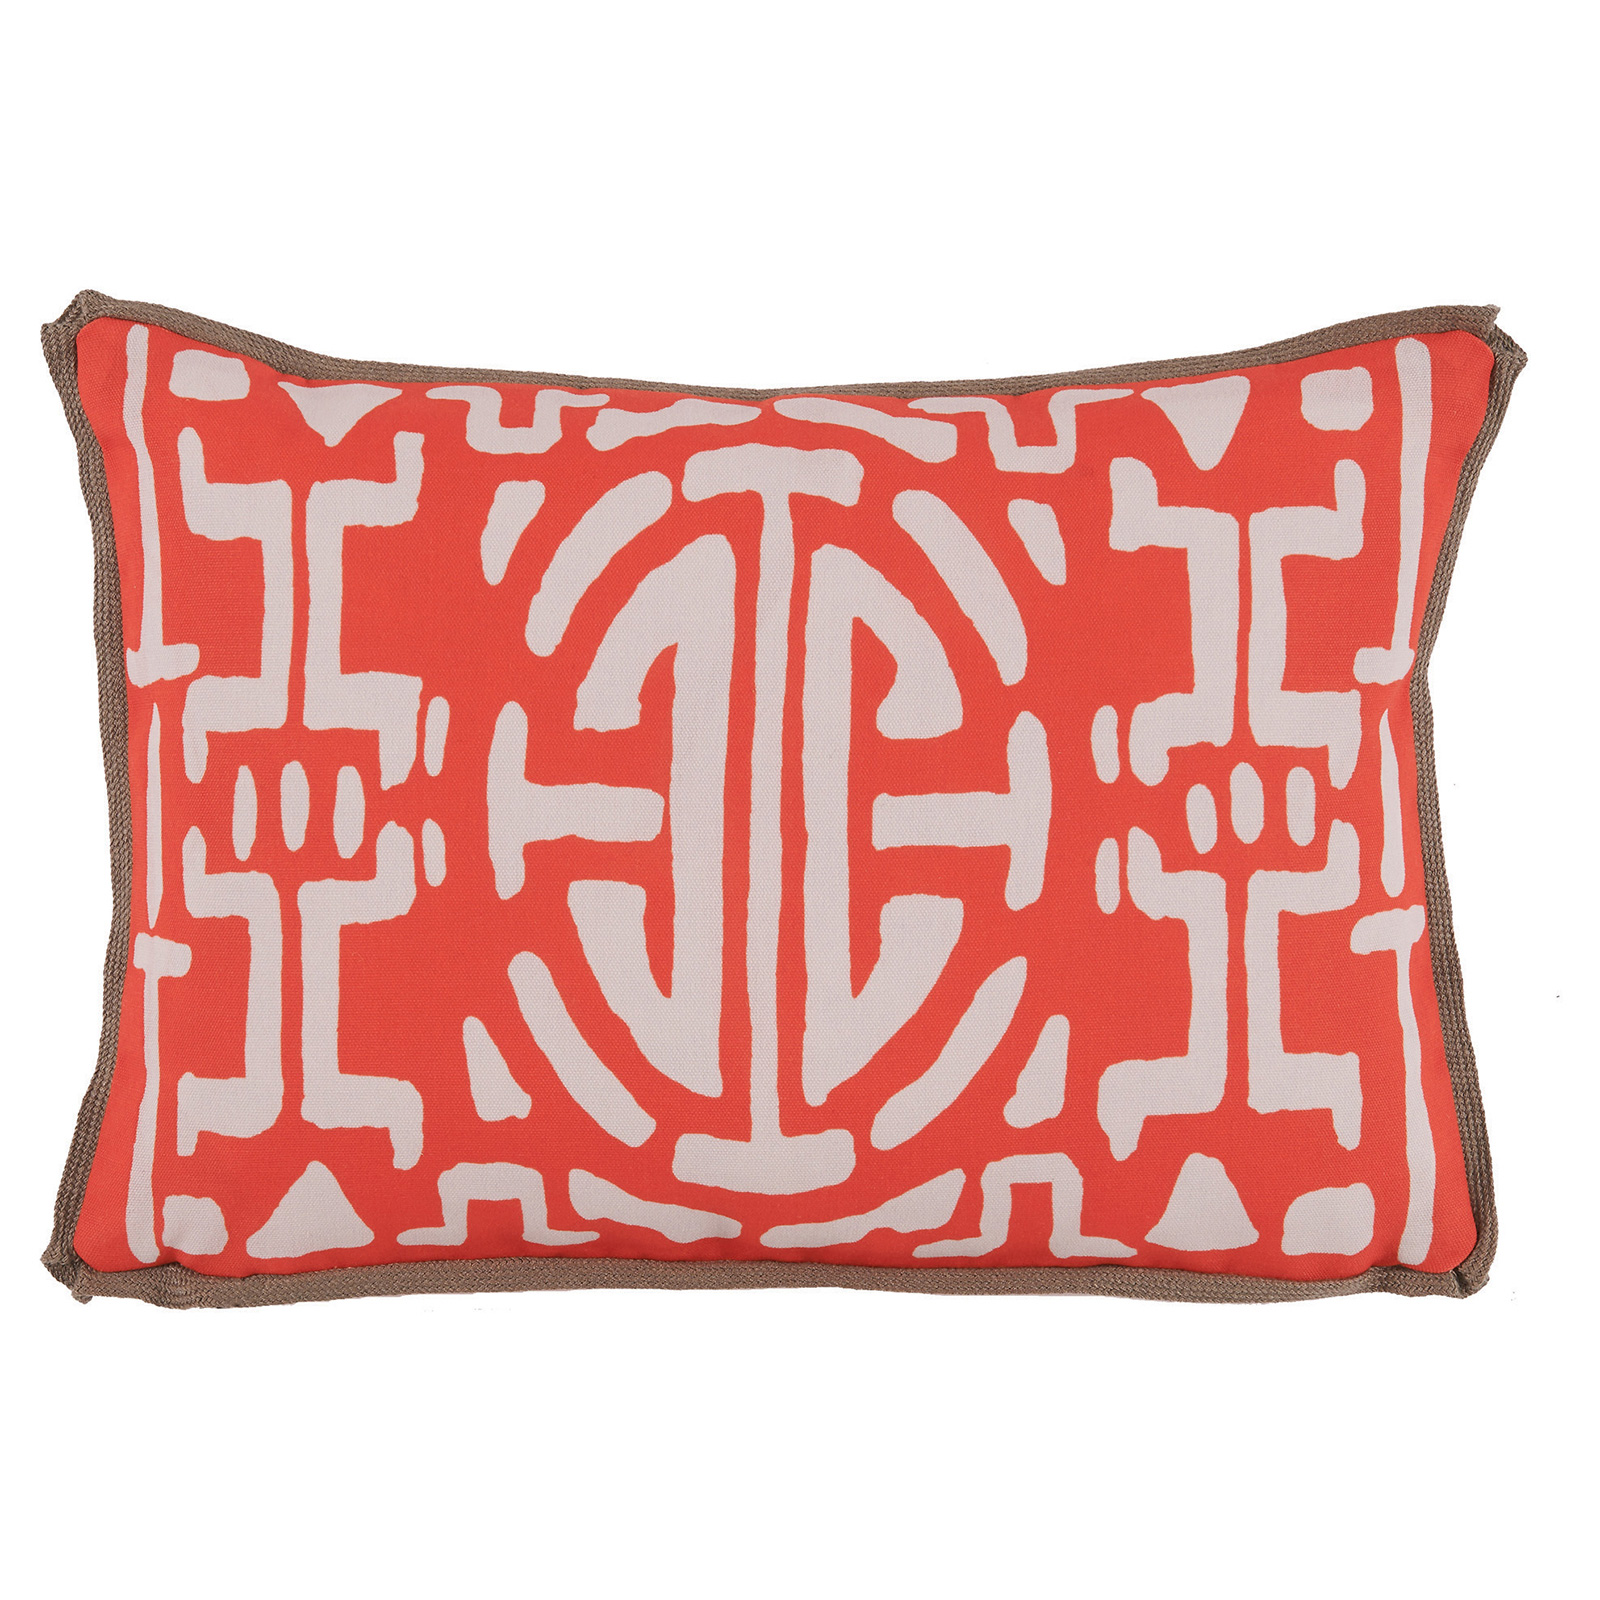 Nava Global Watermelon White Abstract Outdoor Pillow - 13x19